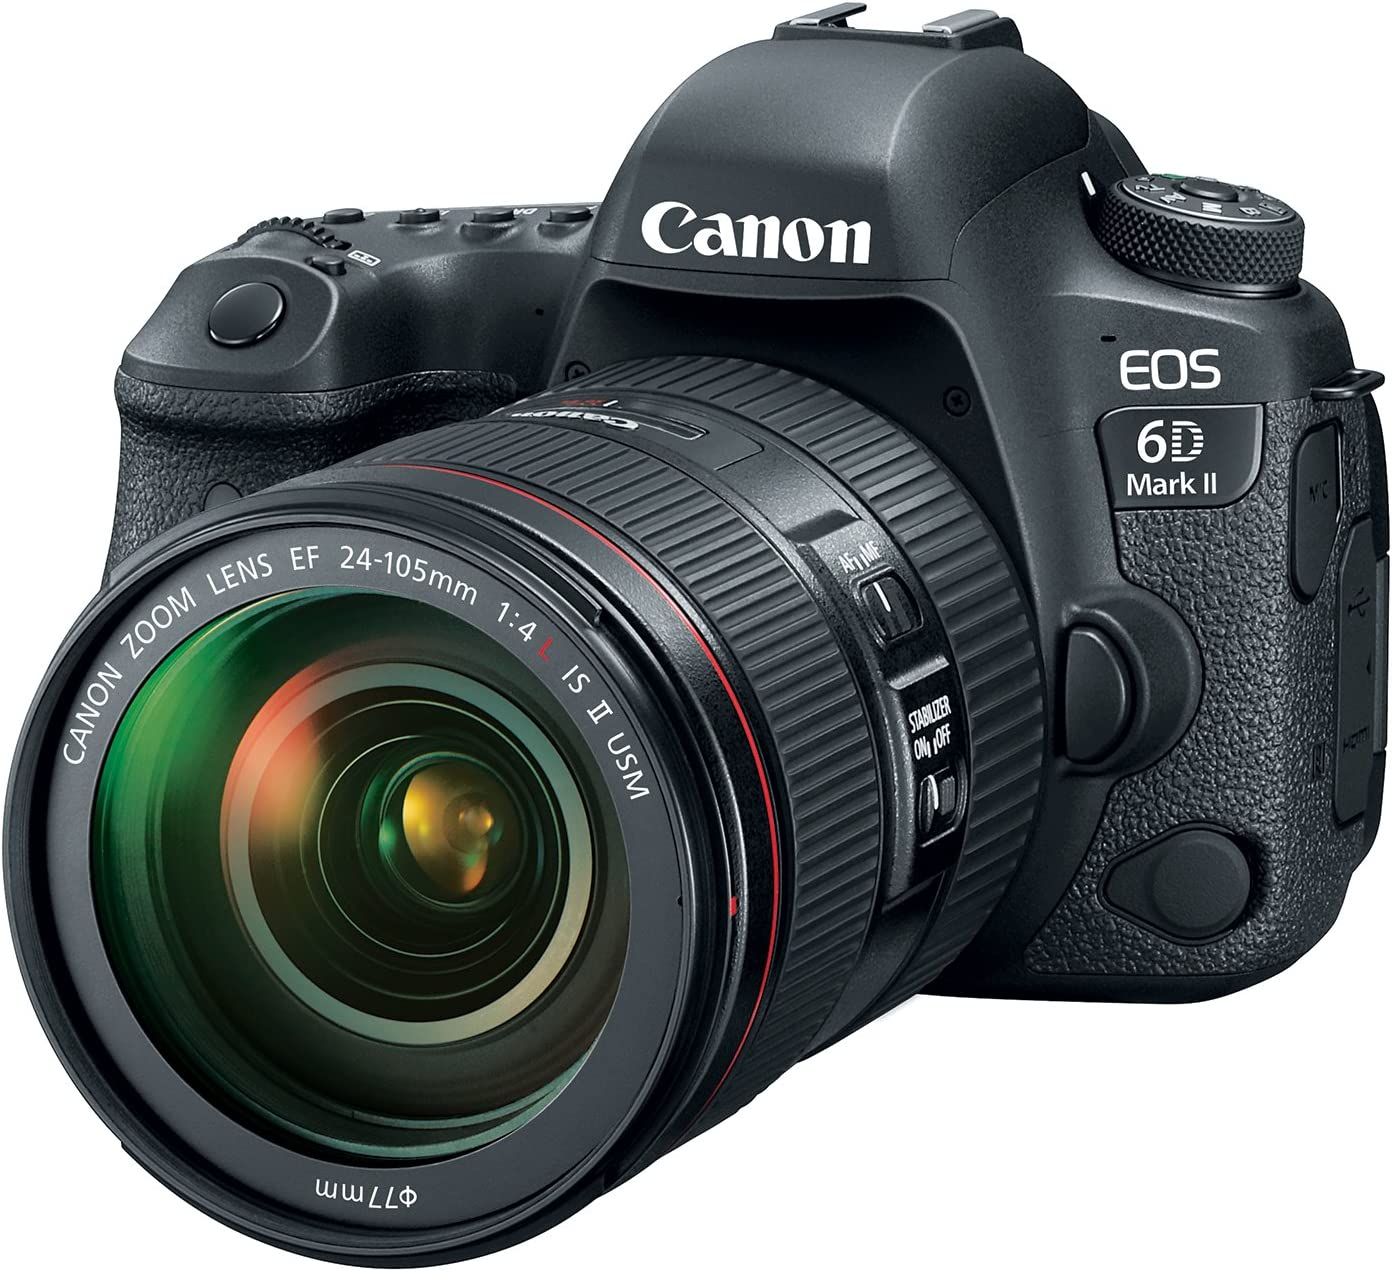 Canon EOS 6D Mark II DSLR Camera with EF 24-105mm USM Lens - WiFi Enabled